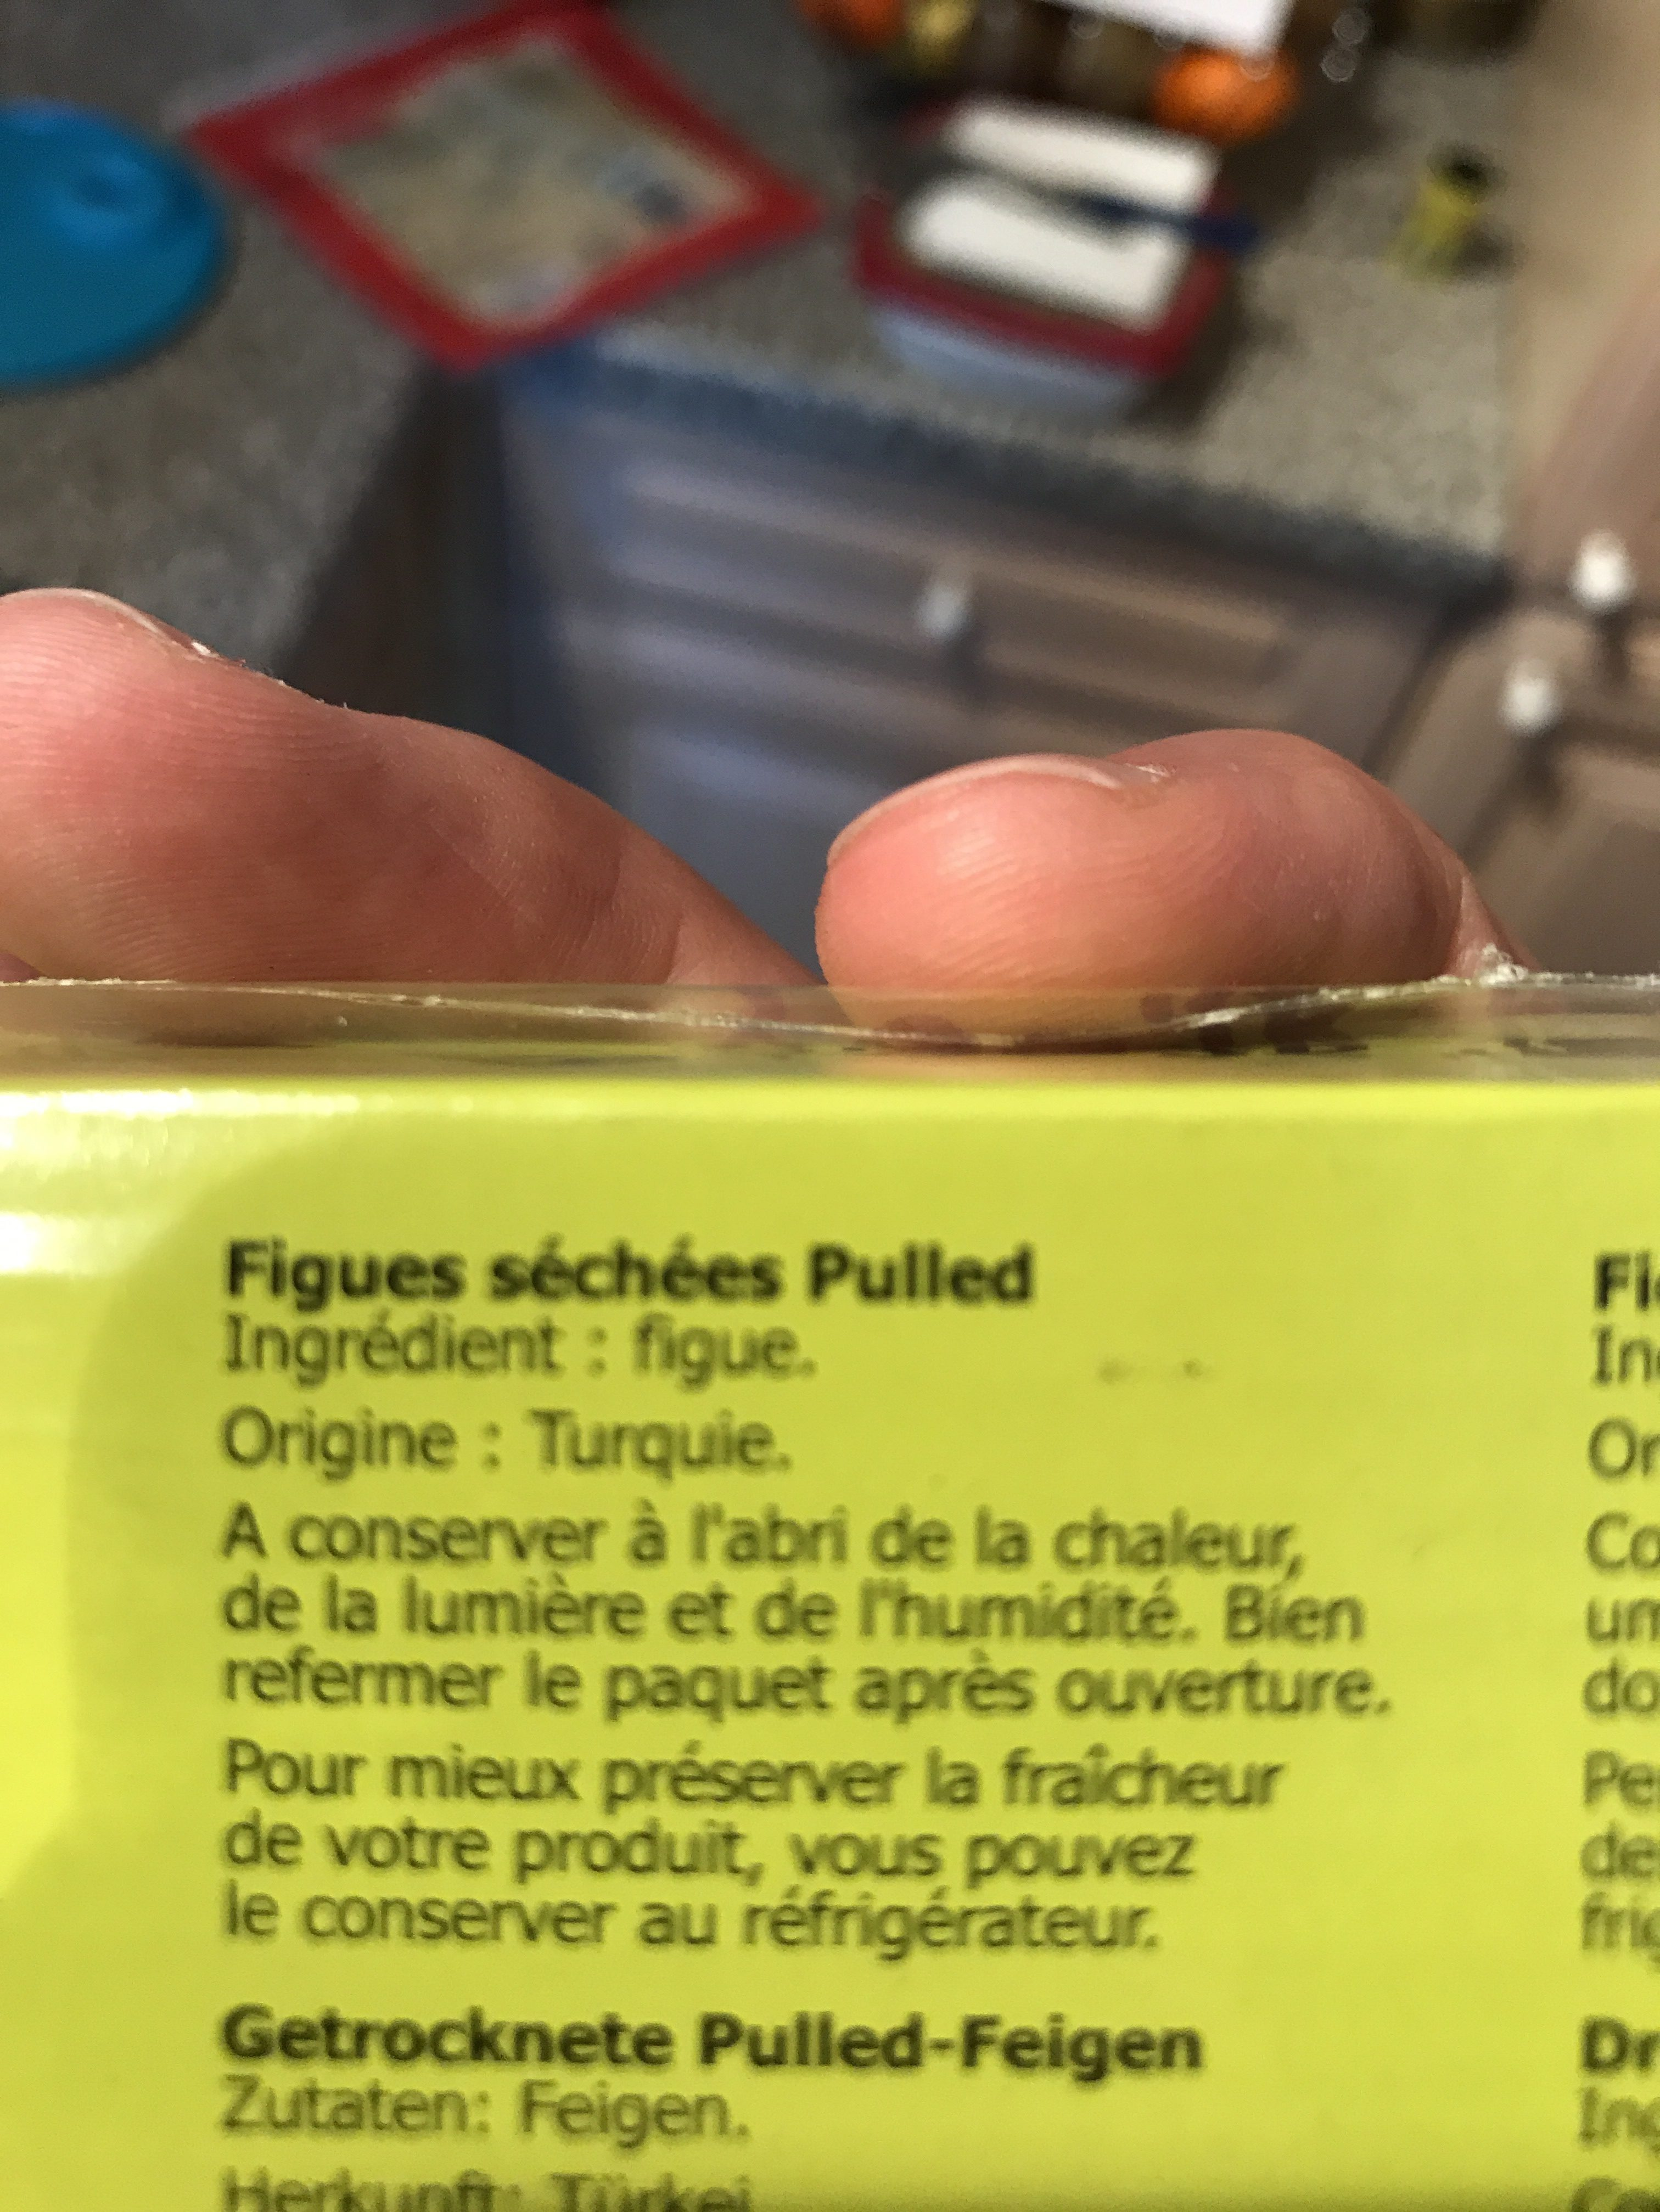 Figues Pulled N°6 Ravier 500G NOUVELLE RECOLTE - Ingredients - fr